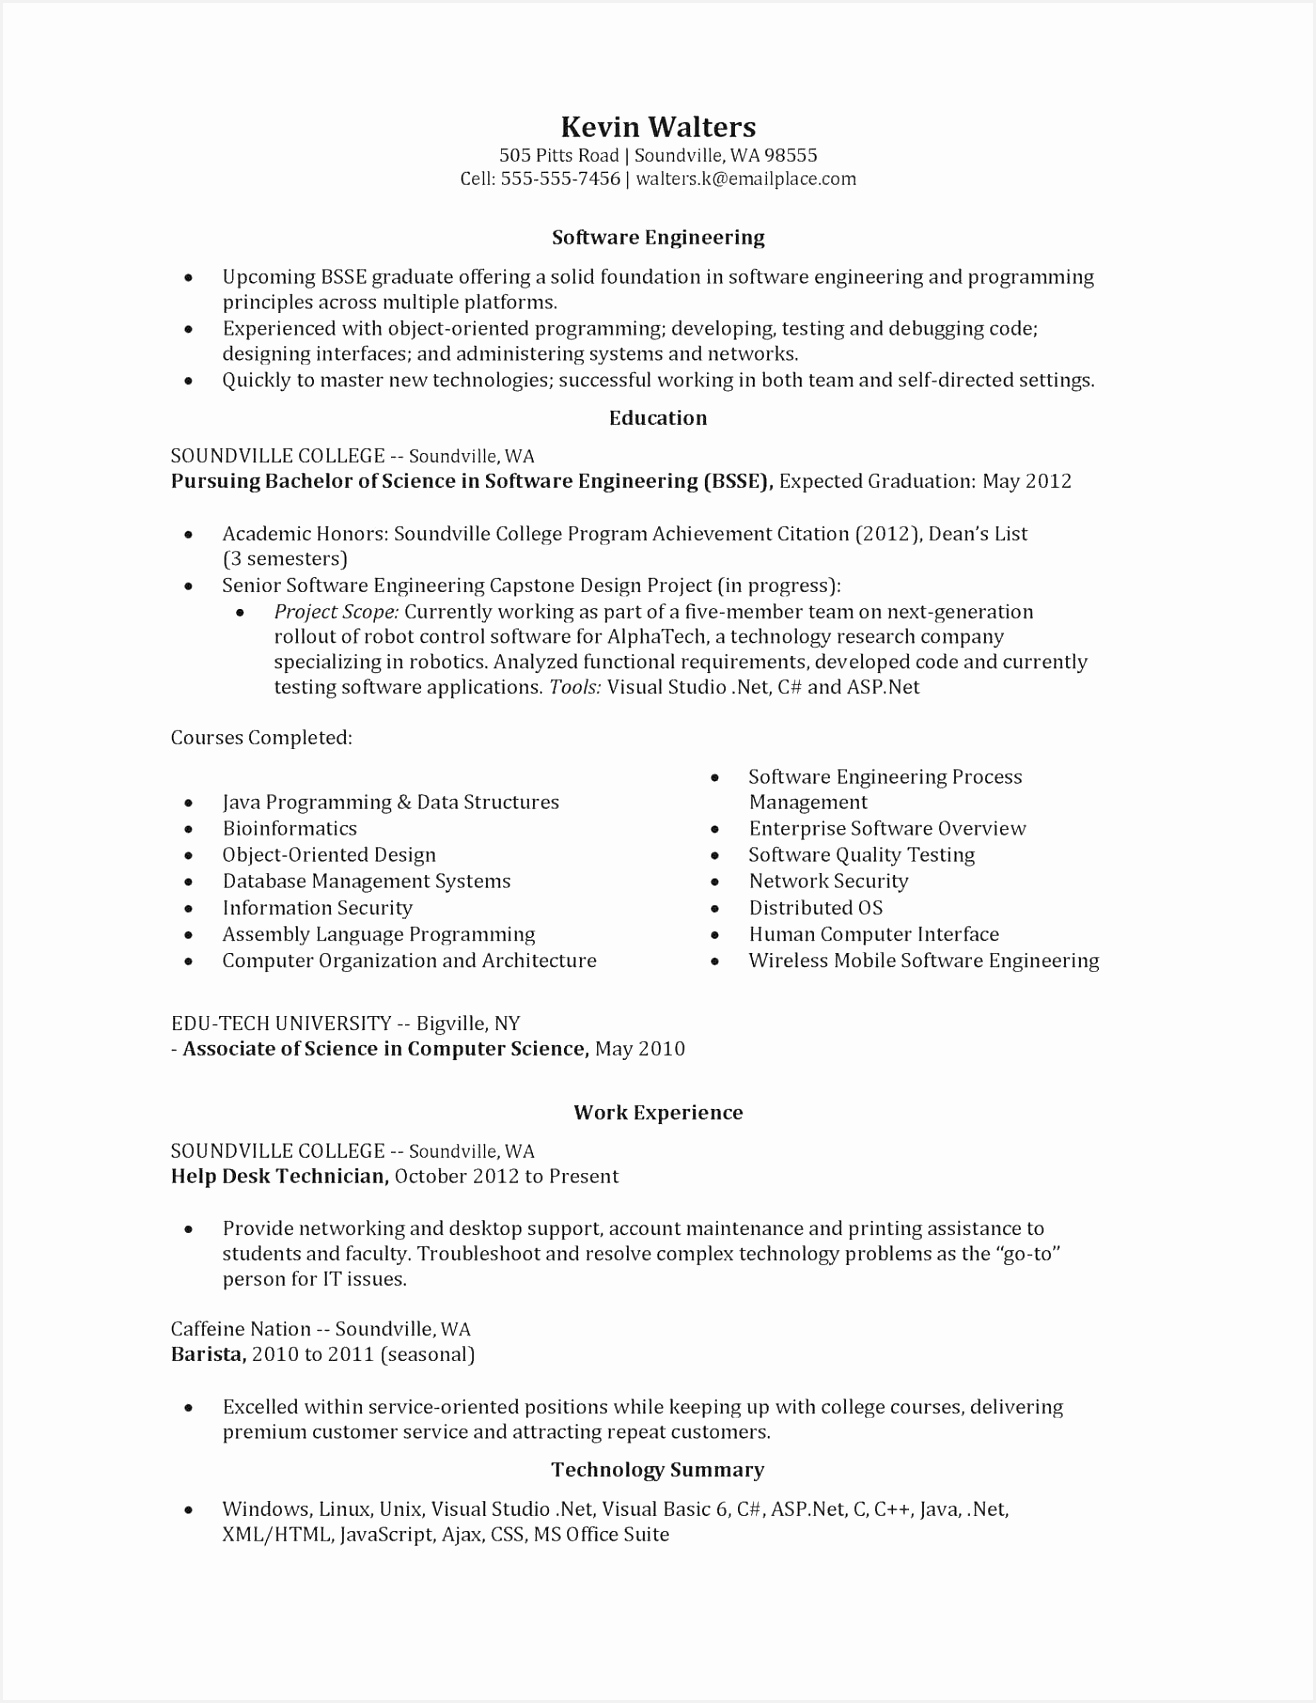 Resume Samples for Graduate School Qcsae Lovely Graduate School Resume Examples Unique Lpn Resume Sample New Line17031316